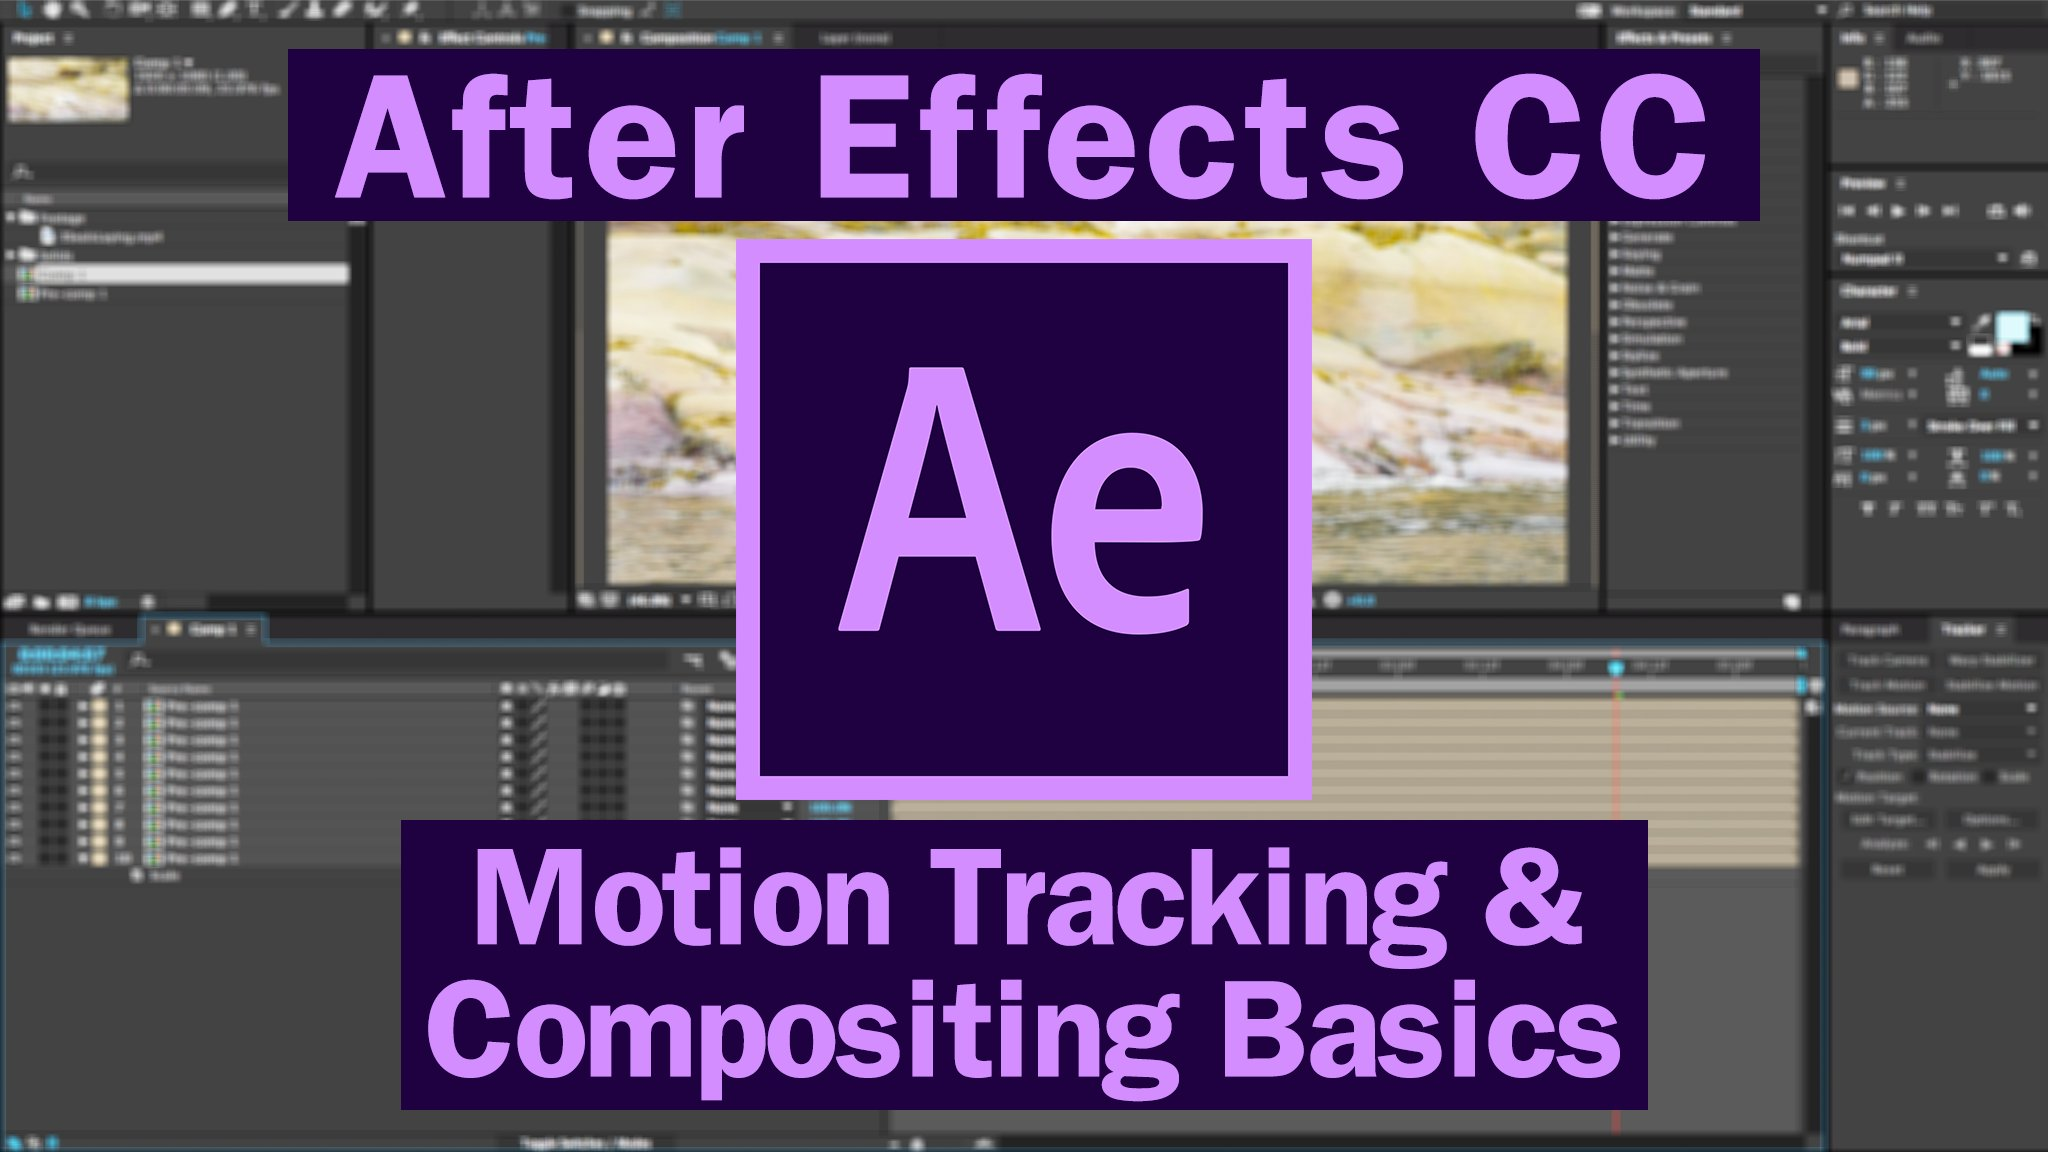 Adobe After Effects CC: Motion Tracking & Compositing Basics